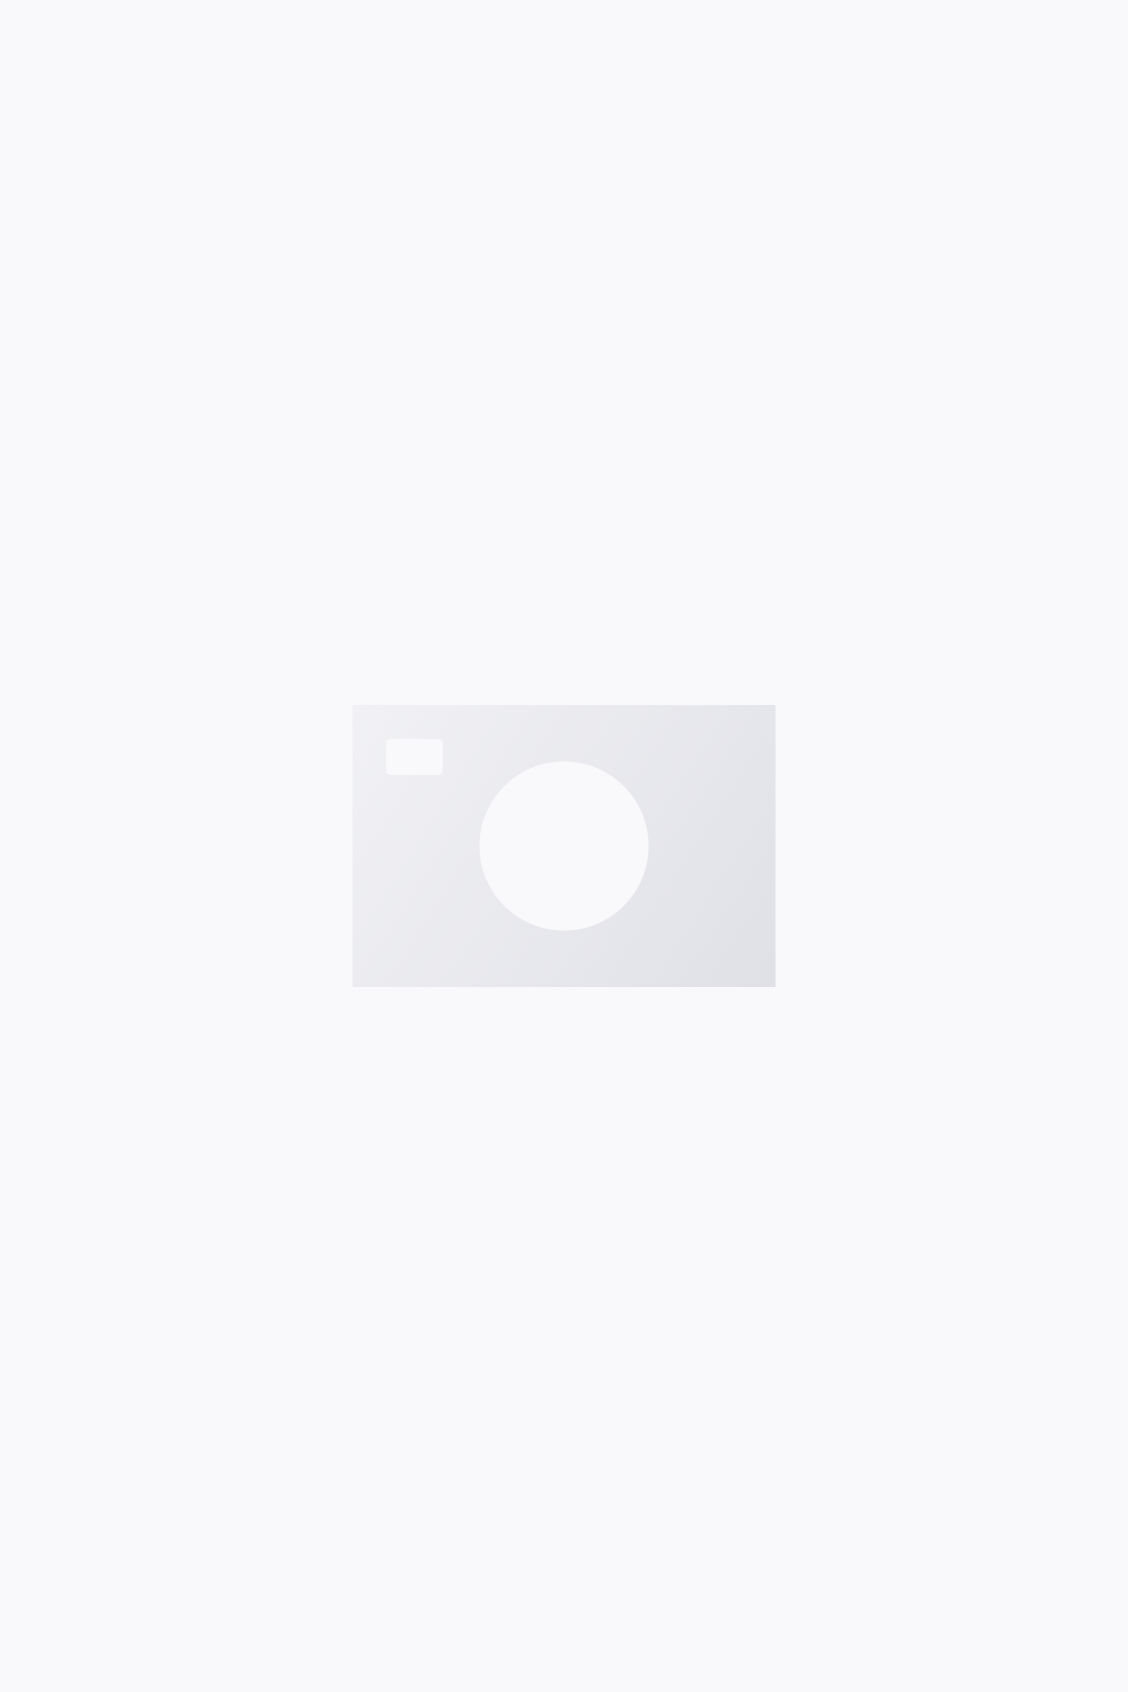 COS A-LINE ROLL NECK TOP,navy